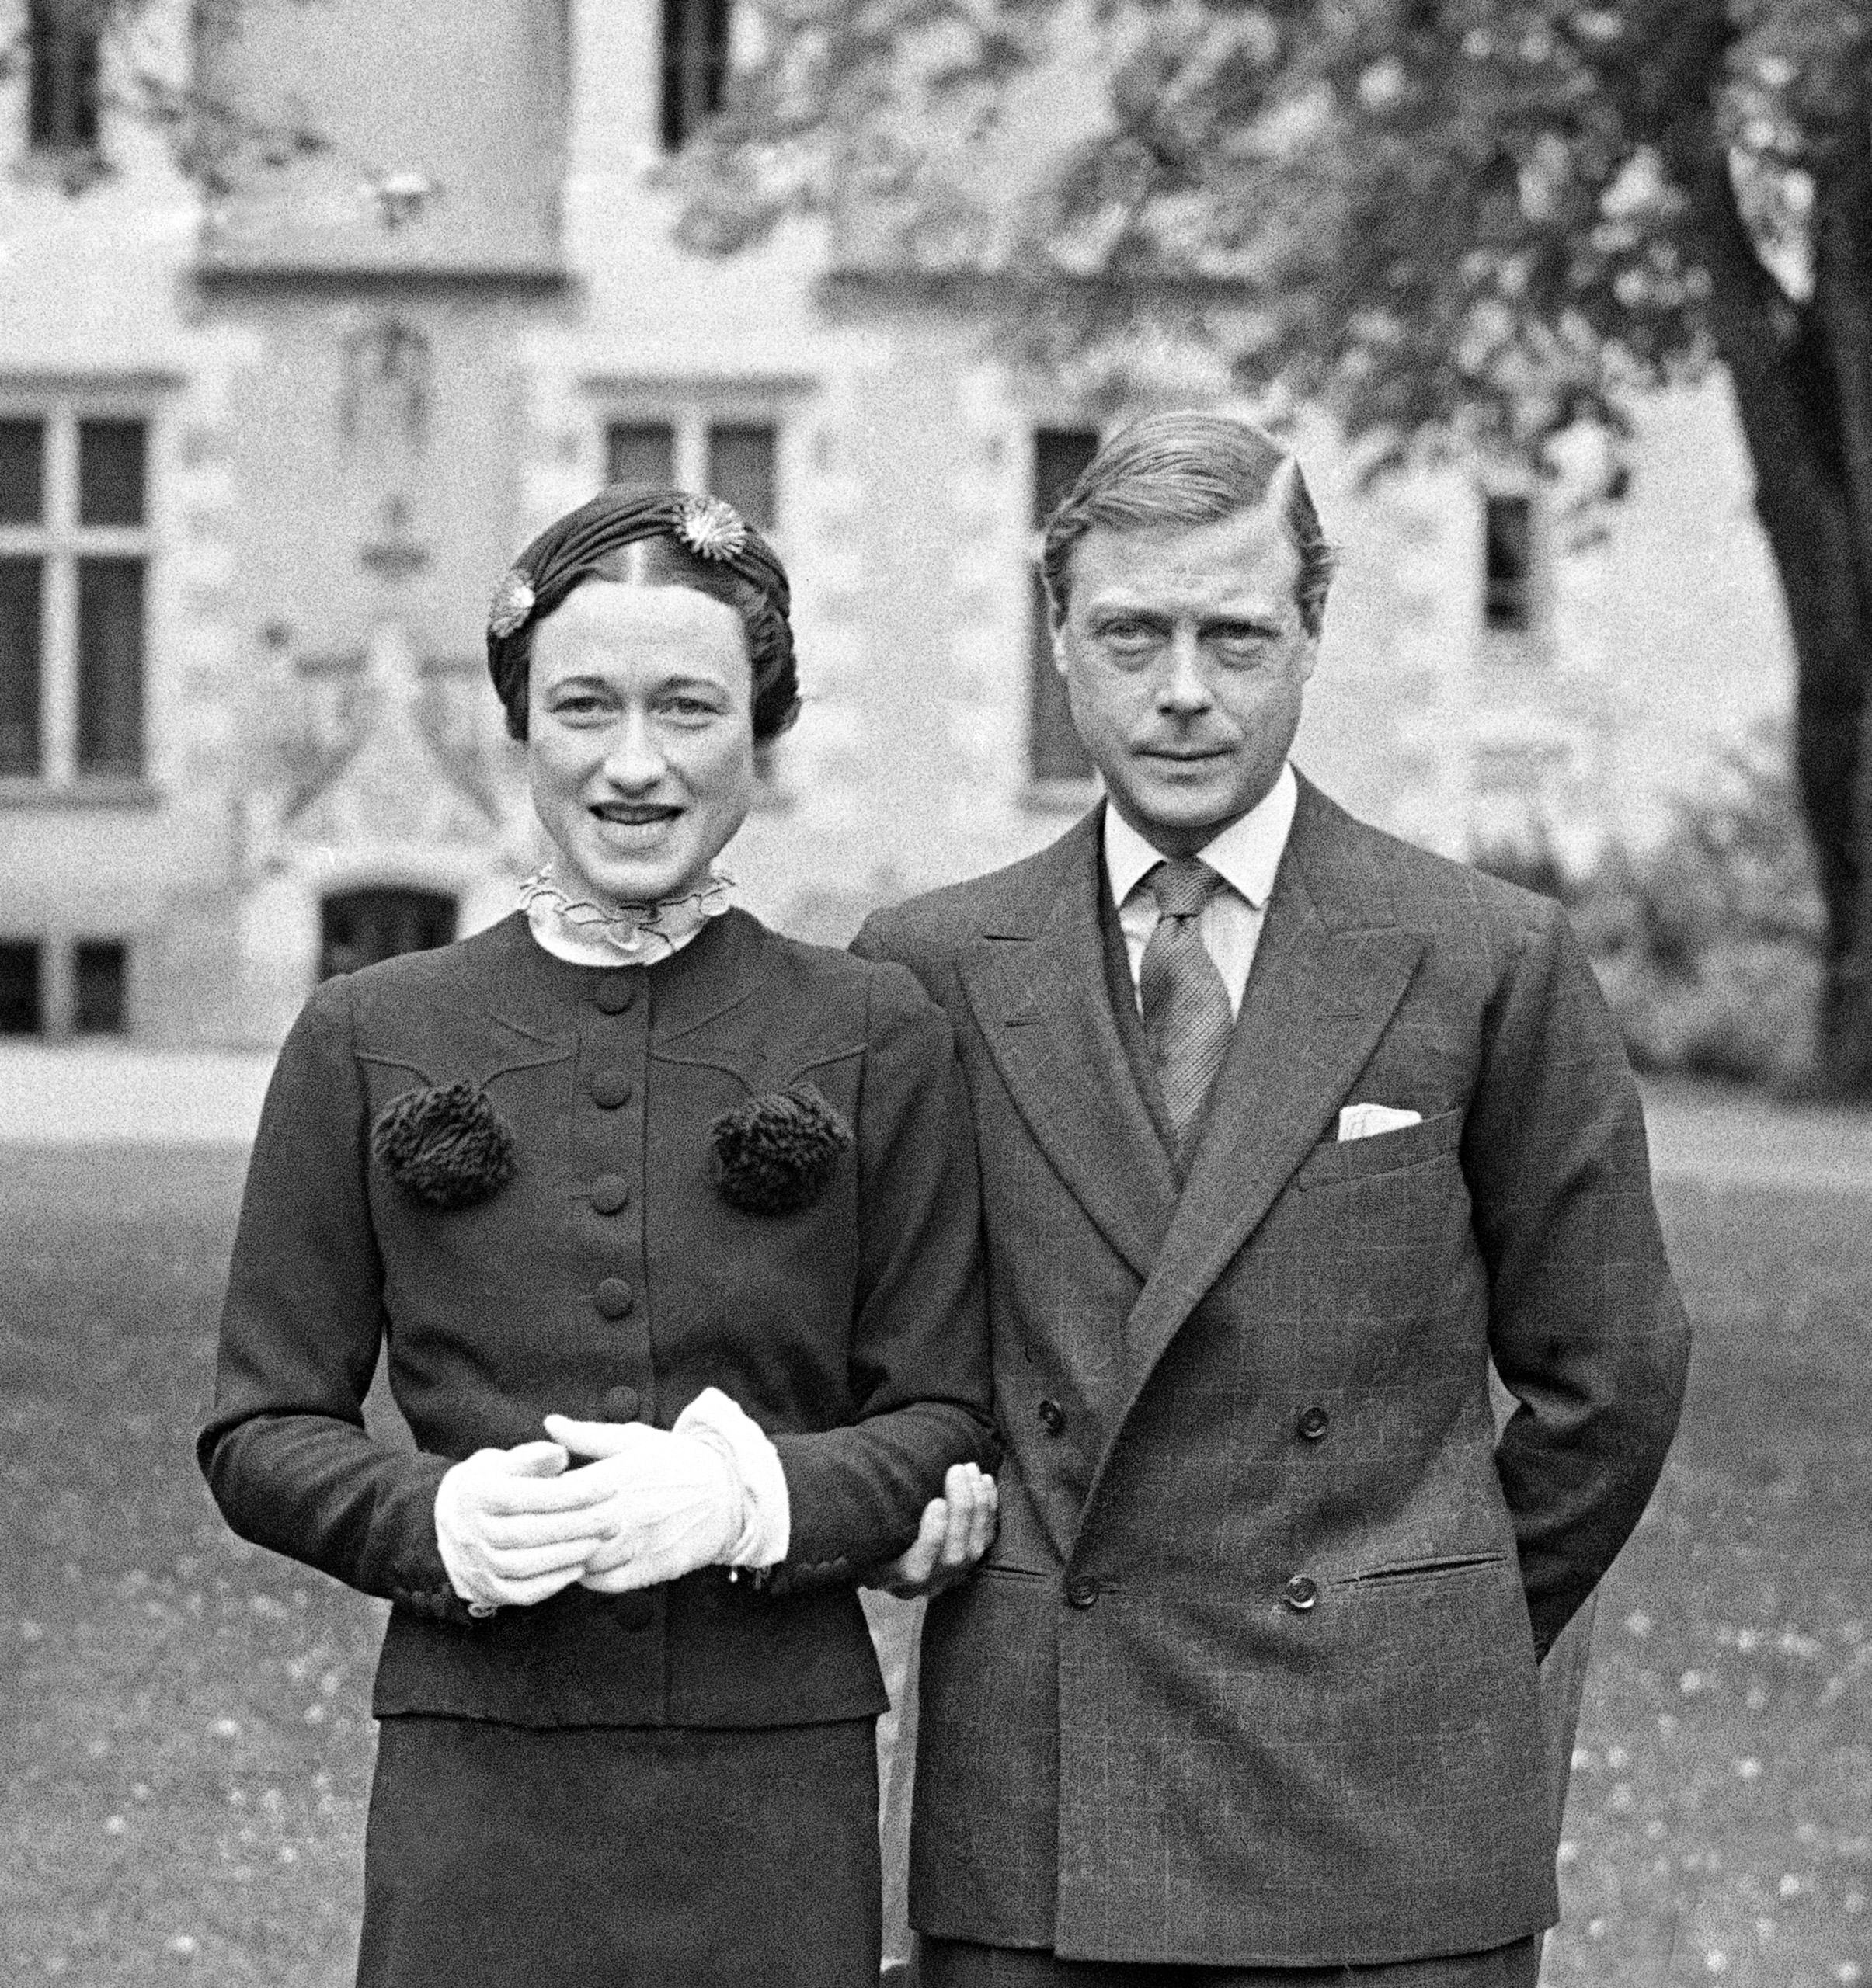 Edward, The Duke of Windsor and Wallis Simpson on the grounds of the Chateau de Cande in Touraine, France on May 7, 1937.